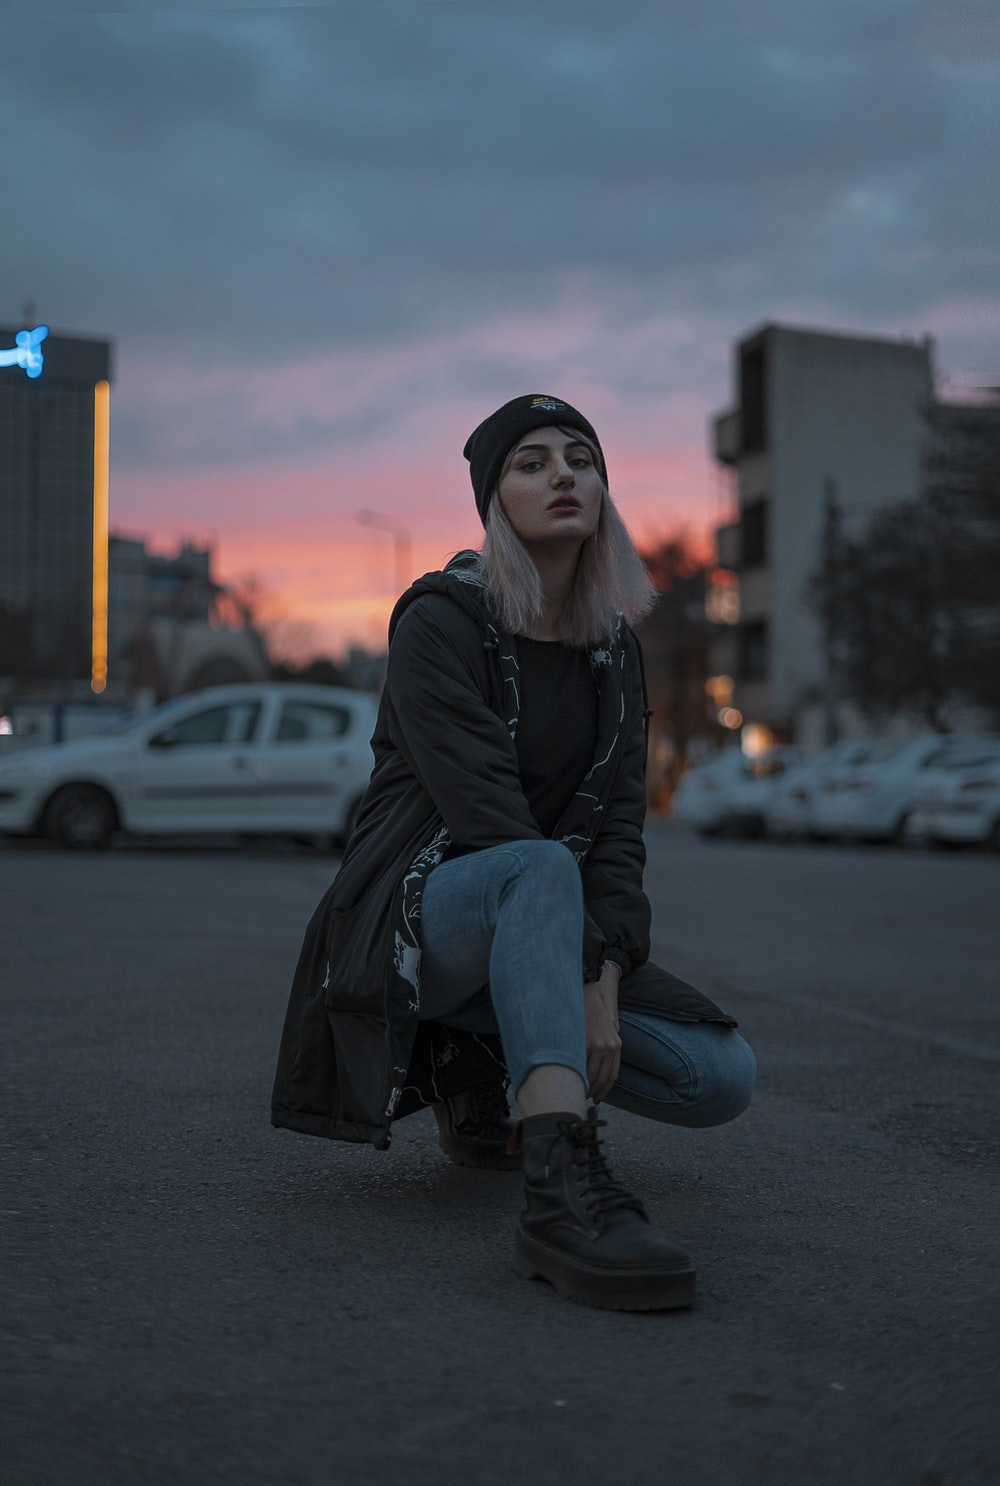 woman in black jacket and blue denim jeans sitting on road during daytime